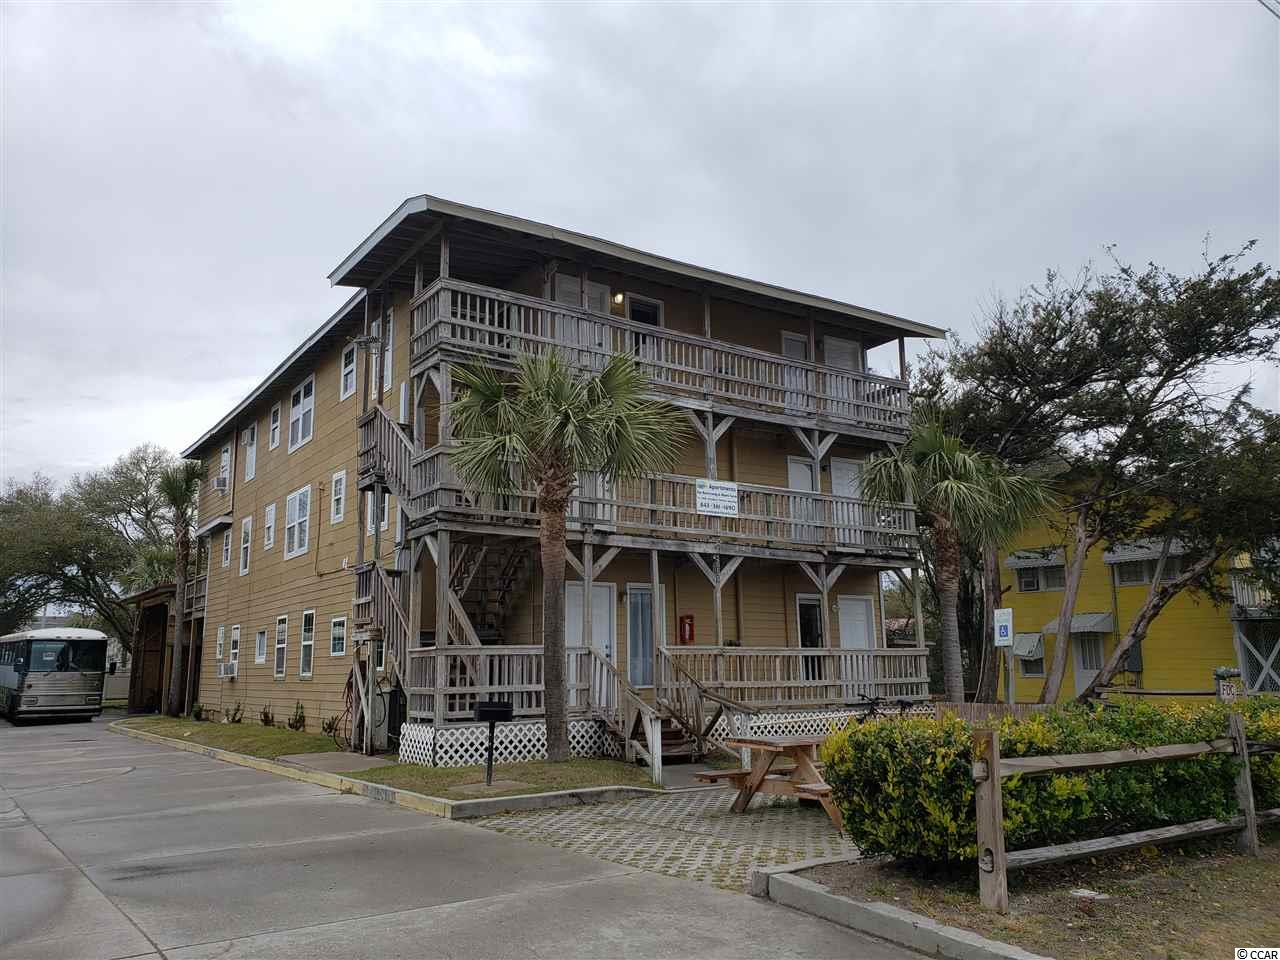 Nine units for sale at the heart of North Myrtle Beach, just 1 block from S. Ocean Blvd. and 1 block from the hub of shops and attractions on Main St.  Walk to the ocean/beach and then walk to all of the fun activities.  ou won't have to worry about finding a parking spot.  all units are up to building codes.  There are three 1 bedroom, 1 bath units, two 2 bedroom, 1 bath units, and four 2 bedroom, 2 bath units.  This property is be sold as a package with a second listing for an adjoining property at 211 1st Ave S. The owner reserves the right to refuse to sell this property separate from the other listing.